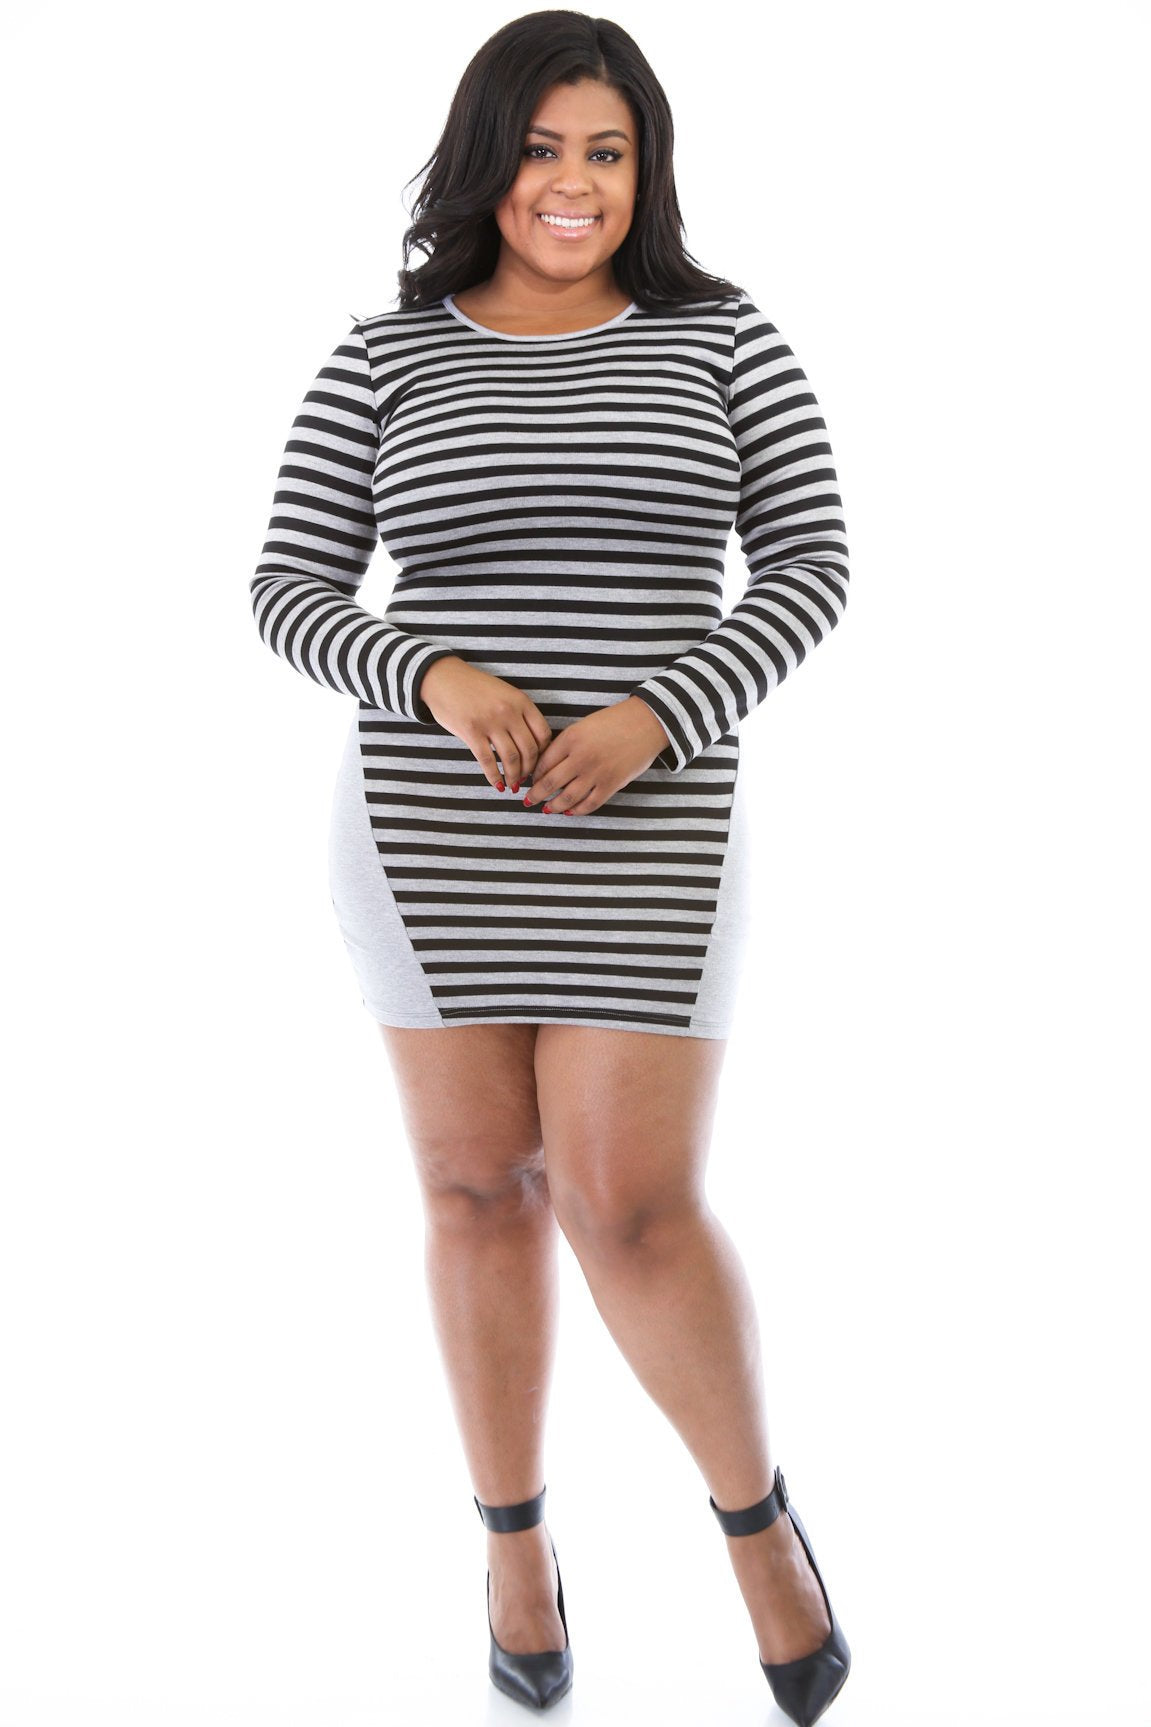 Stripe or Solid Figure Dress